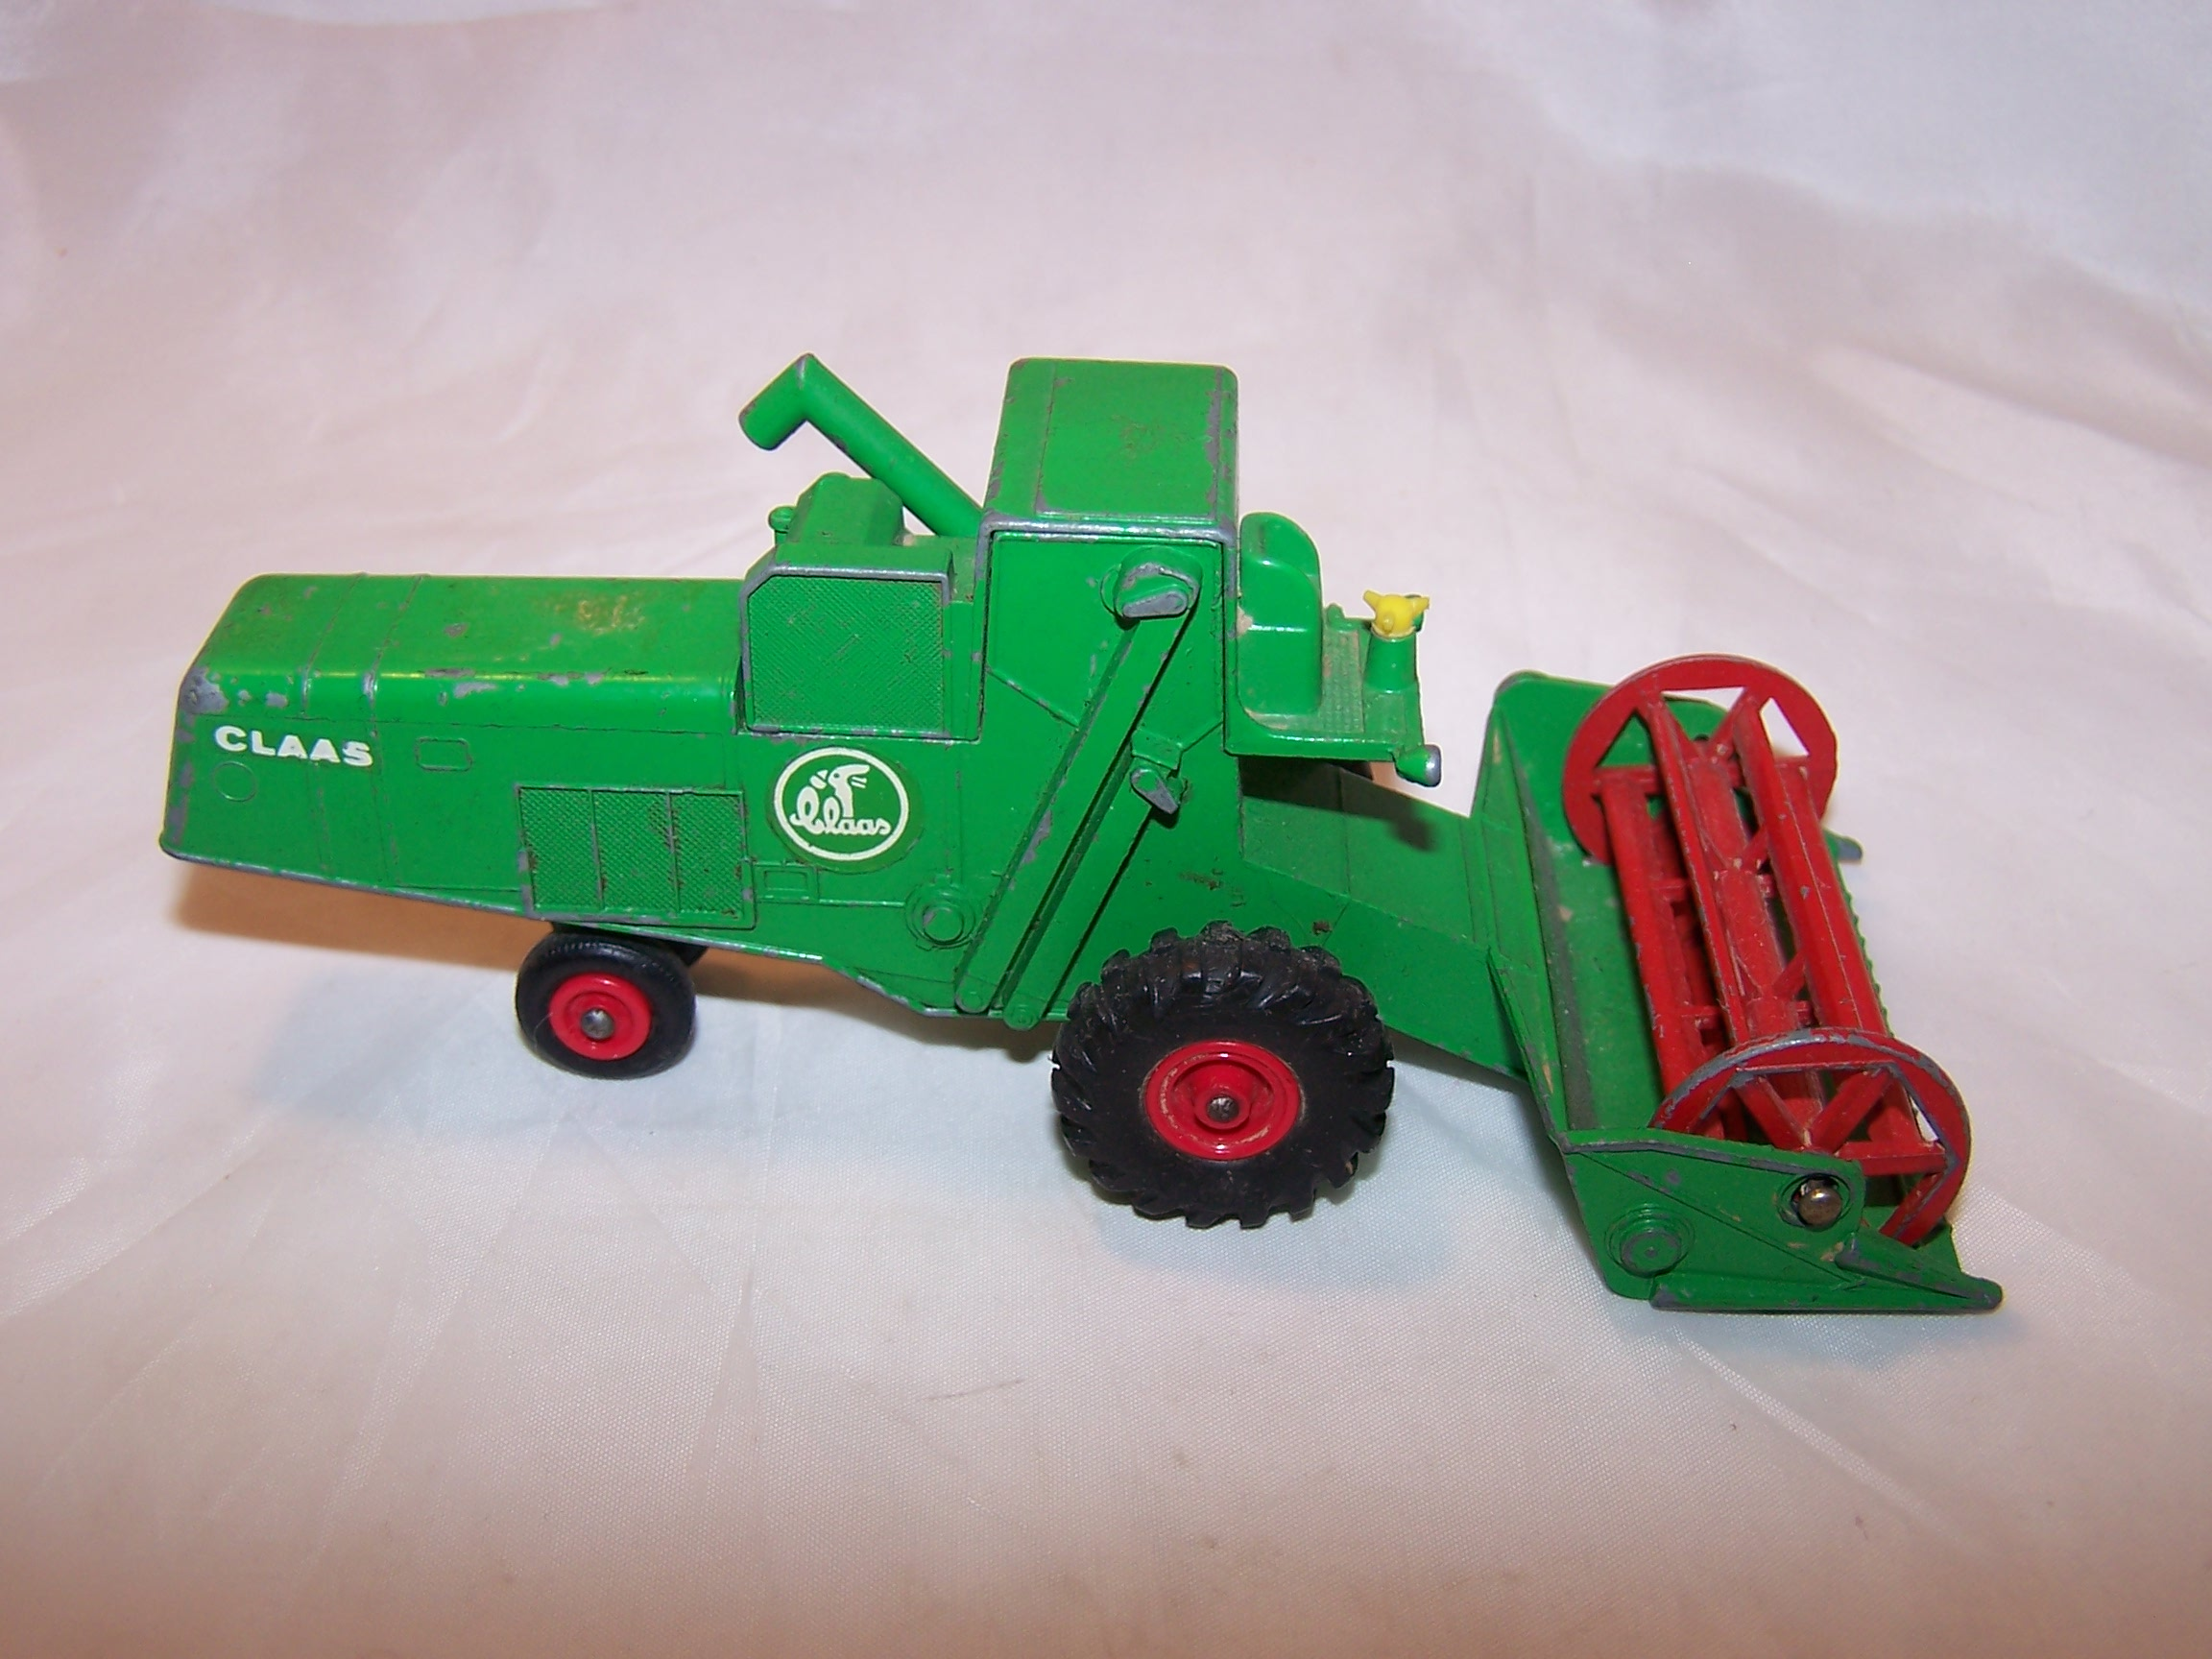 Claas Combine Harvester K9, Matchbox, Lesney